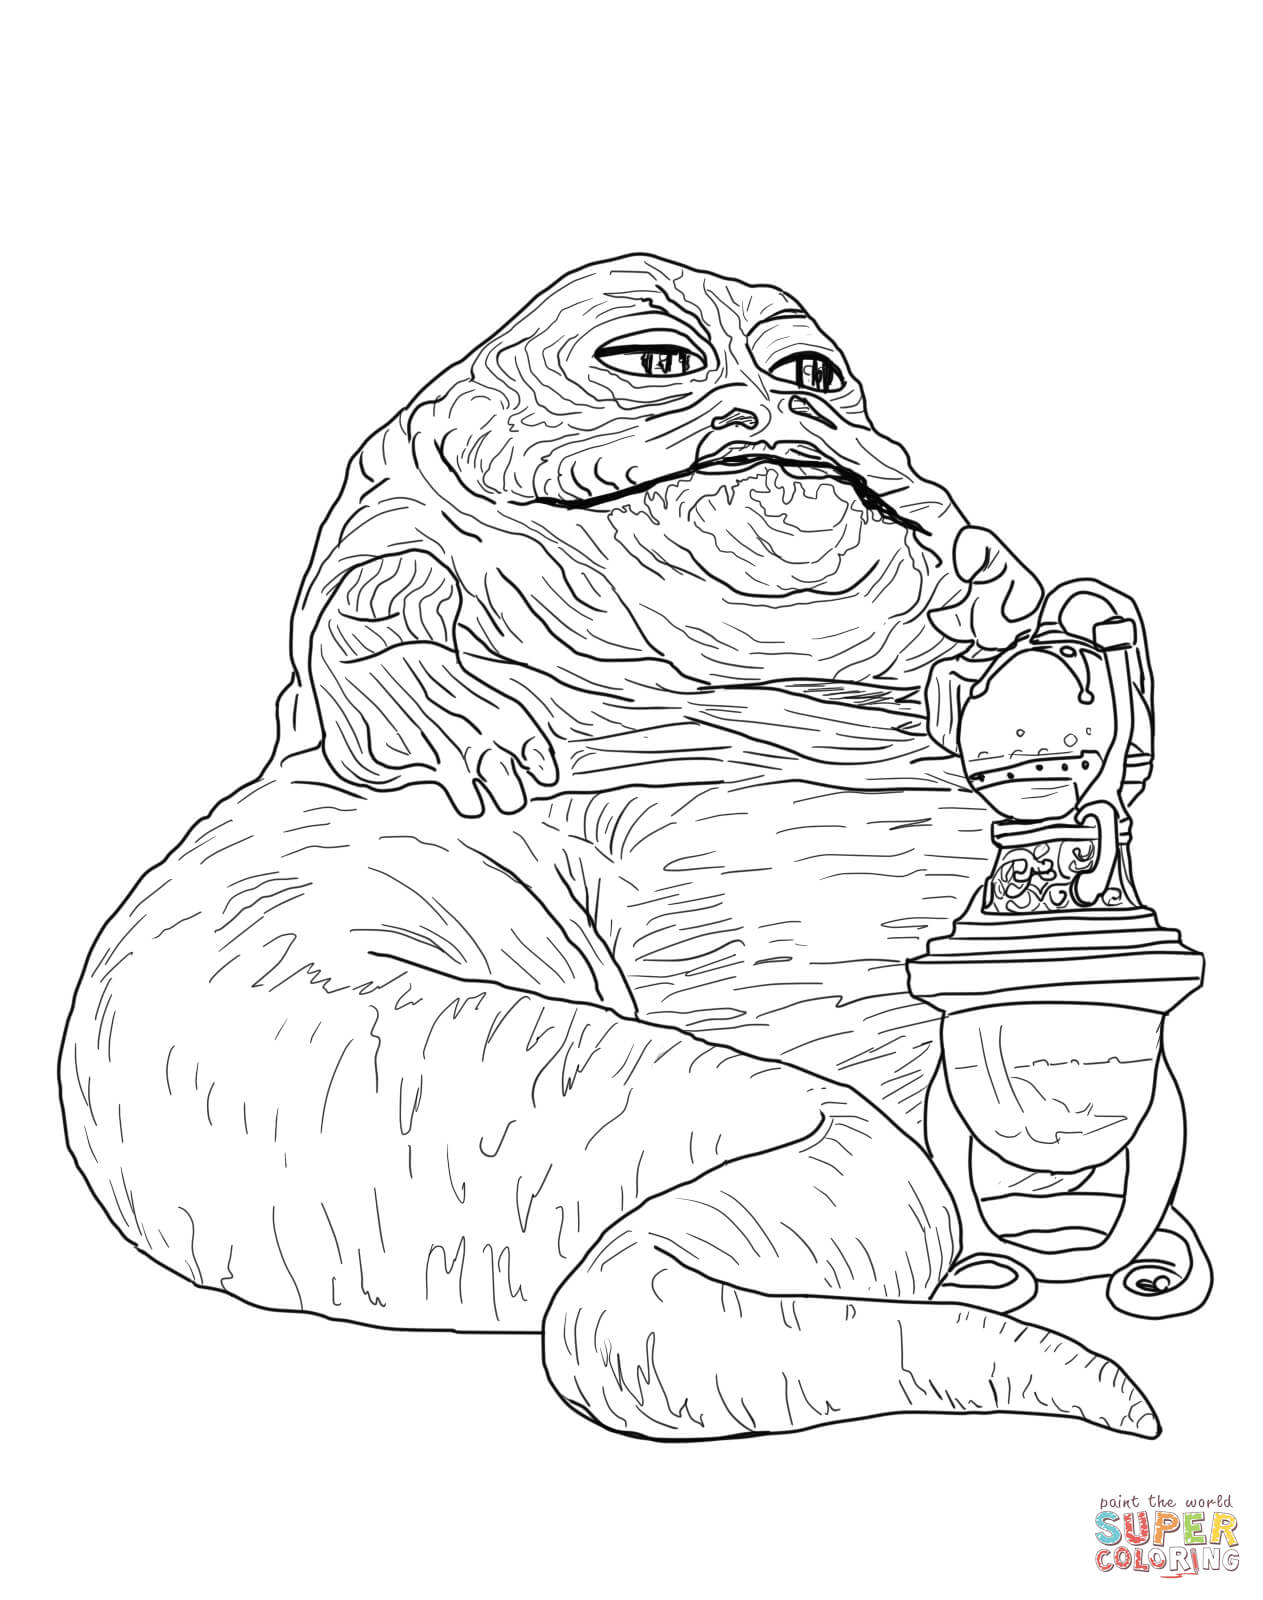 Jabba The Hutt Coloring Page Free Printable Coloring Pages